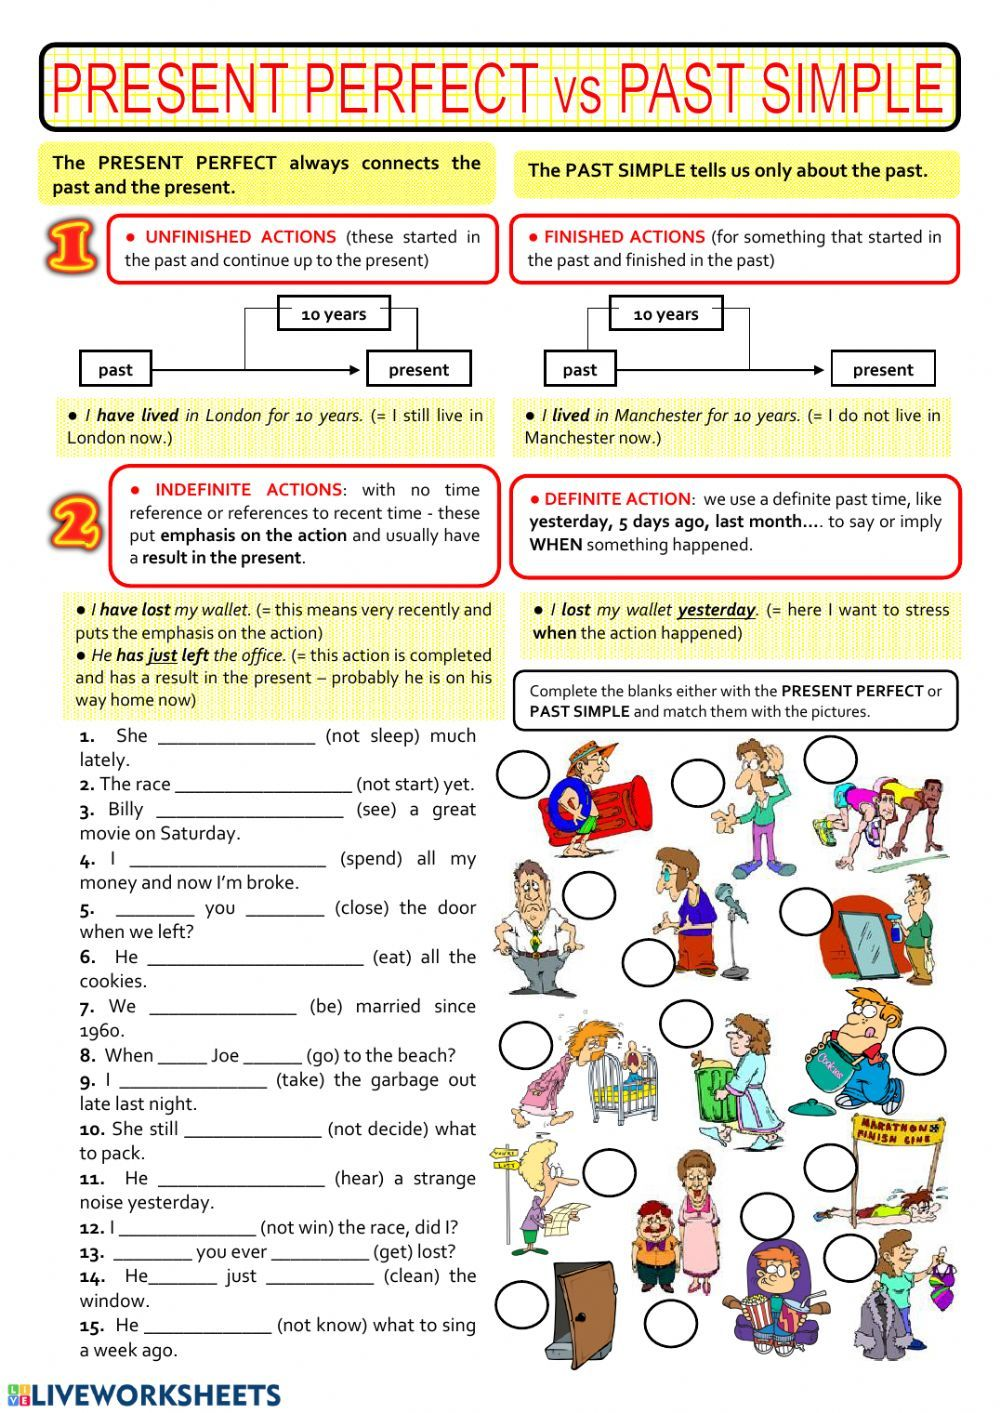 Present perfect simple or Simple past? Interactive